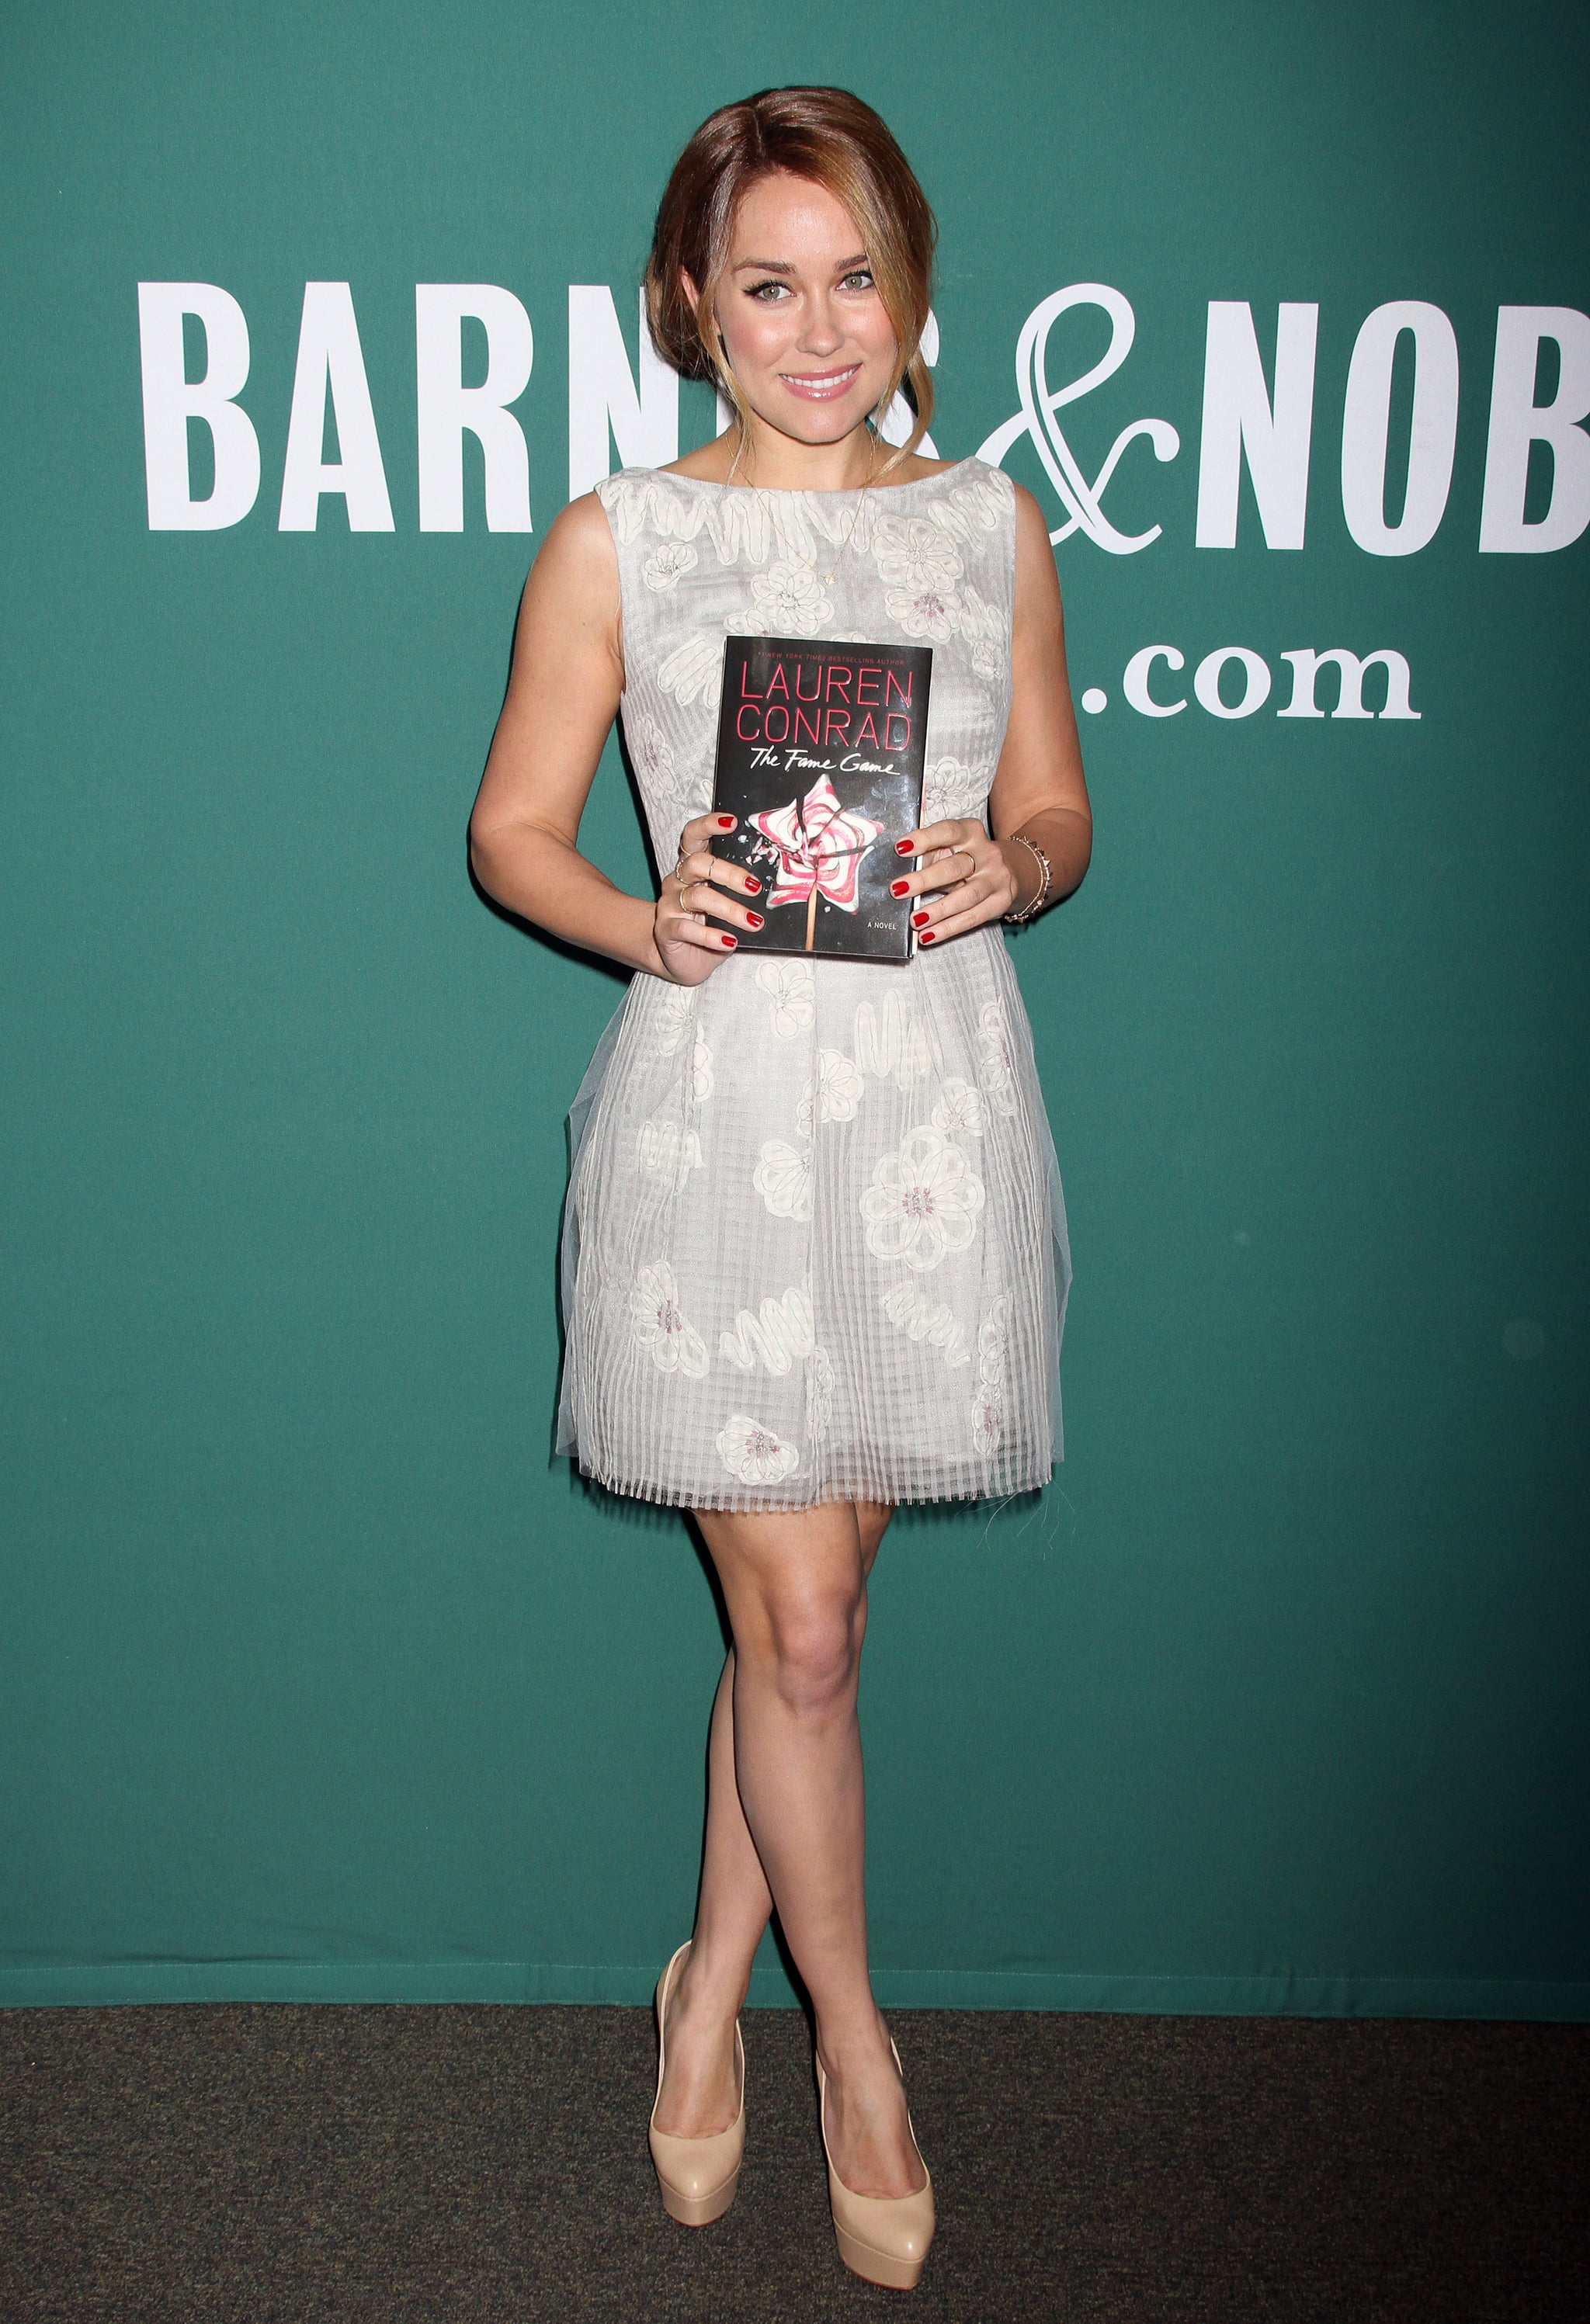 Lauren Conrad got back to basics with a textured floral dress by Lela Rose and nude platform pumps at a book signing in NYC. Lesson from Lauren: accentuate your gorgeous gams with leg-lengthening pumps.